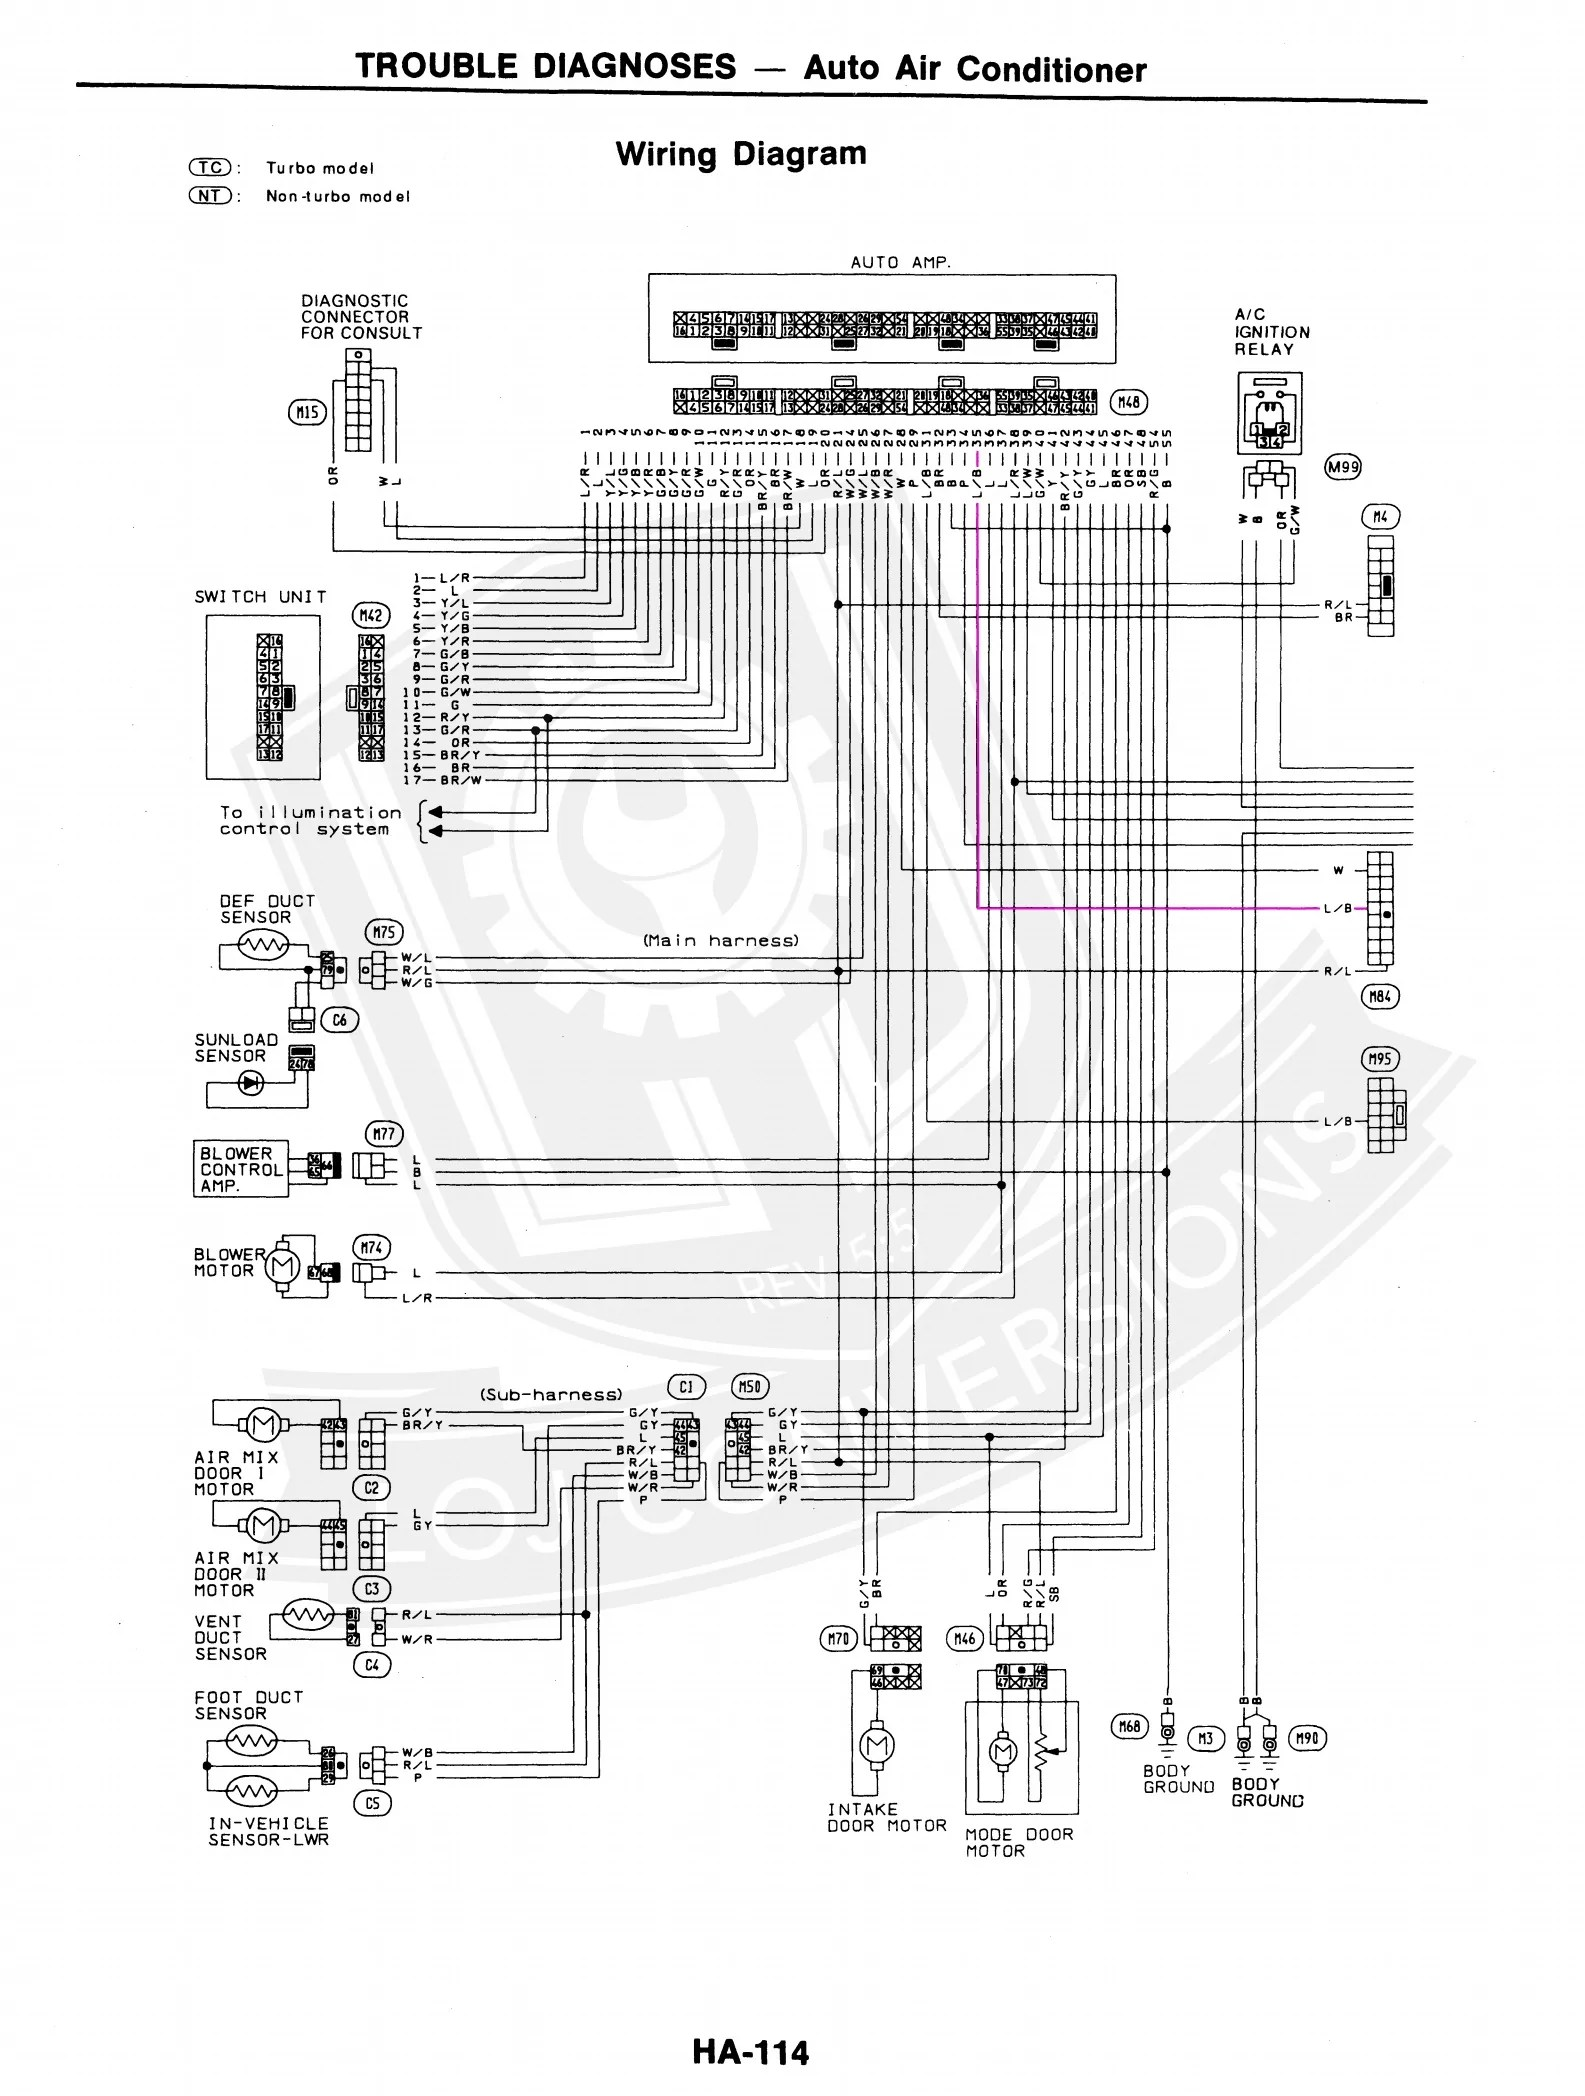 300zx turbo wiring diagram wiring diagram nissan datsun 300zx turbo exhaust diagram category exhaust diagram [ 1585 x 2096 Pixel ]